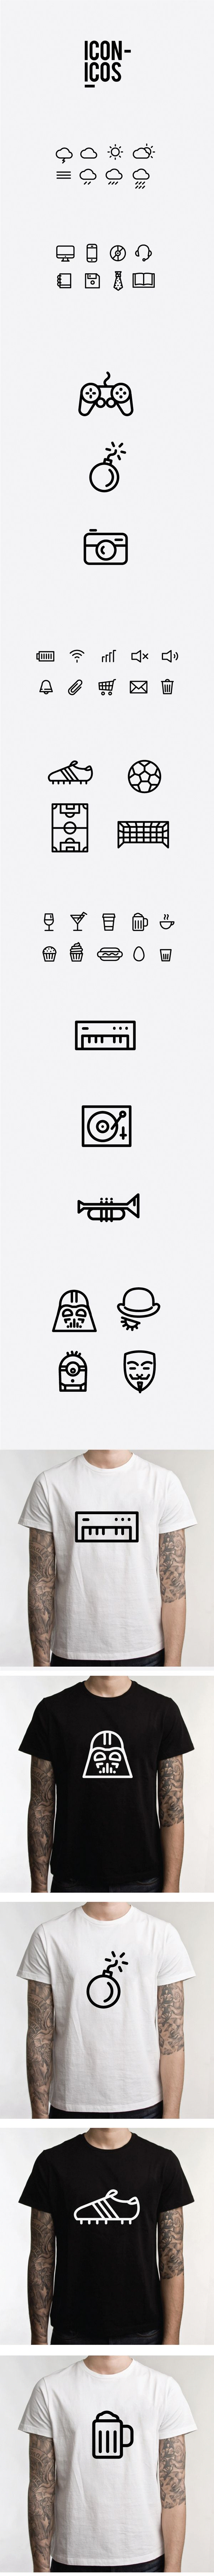 ICONICOS by Adrián Heras, via Behance